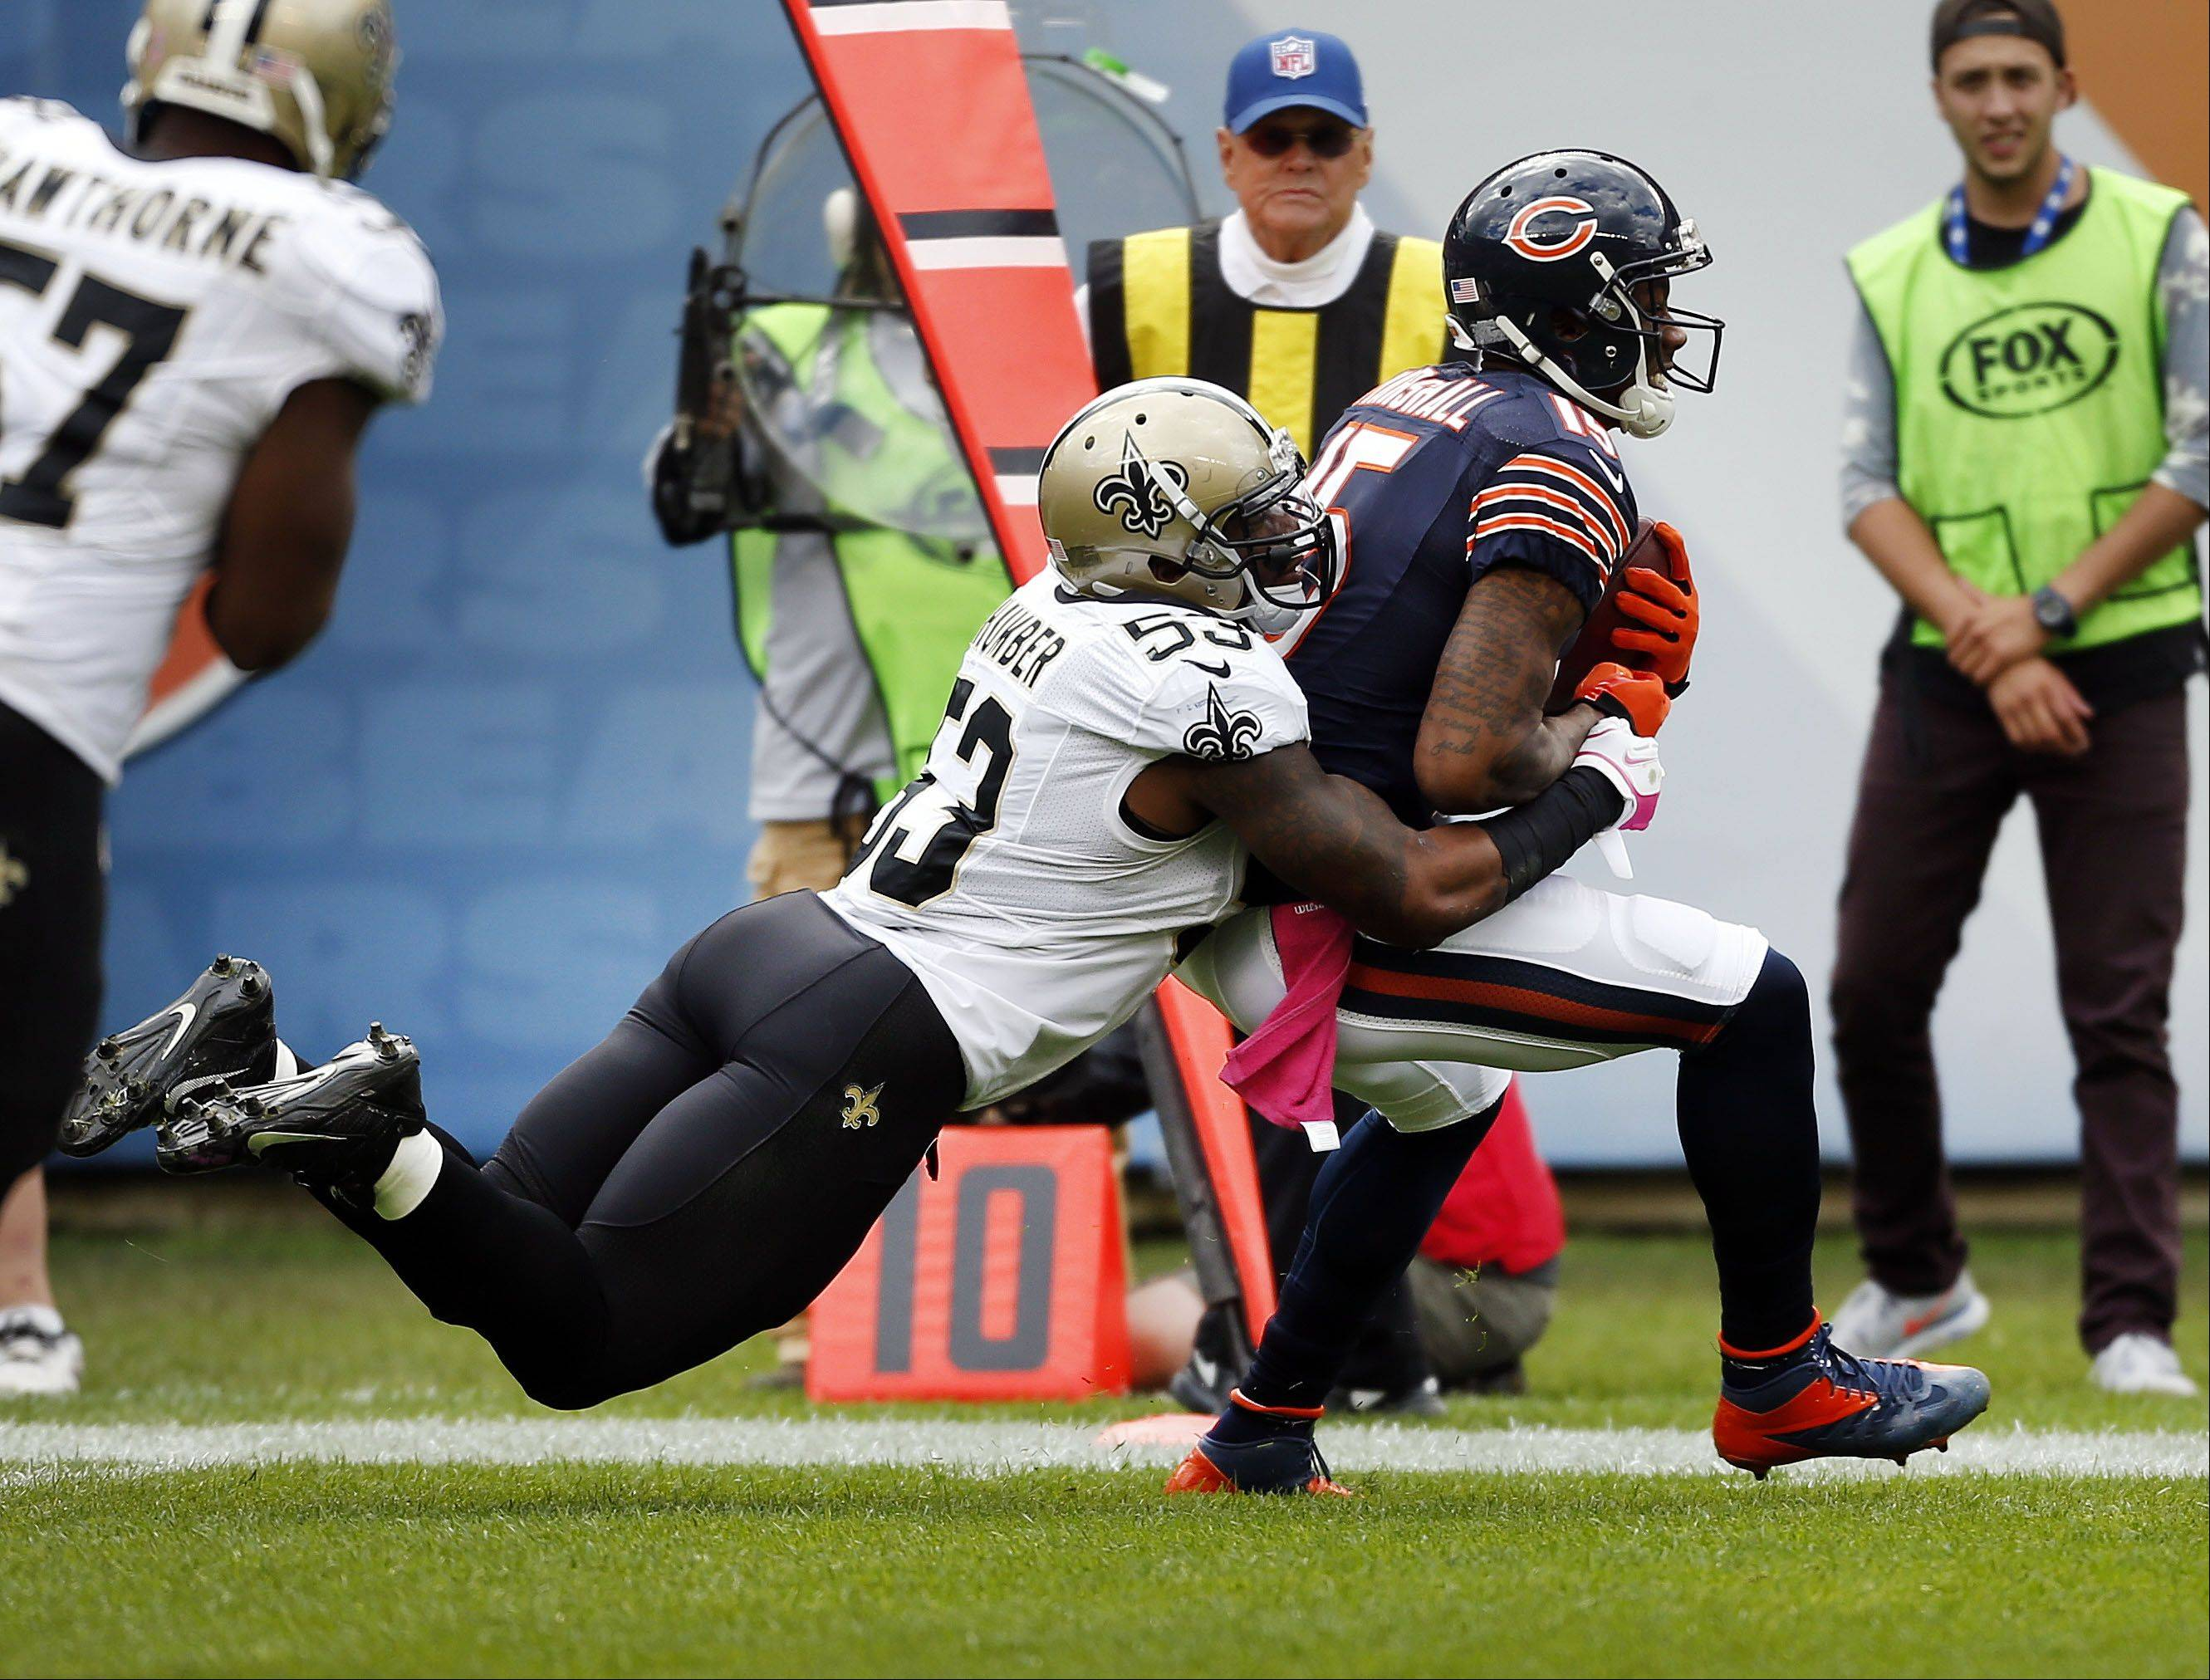 New Orleans Saints linebacker Ramon Humber tackles Chicago Bears wide receiver Brandon Marshall after a catch.